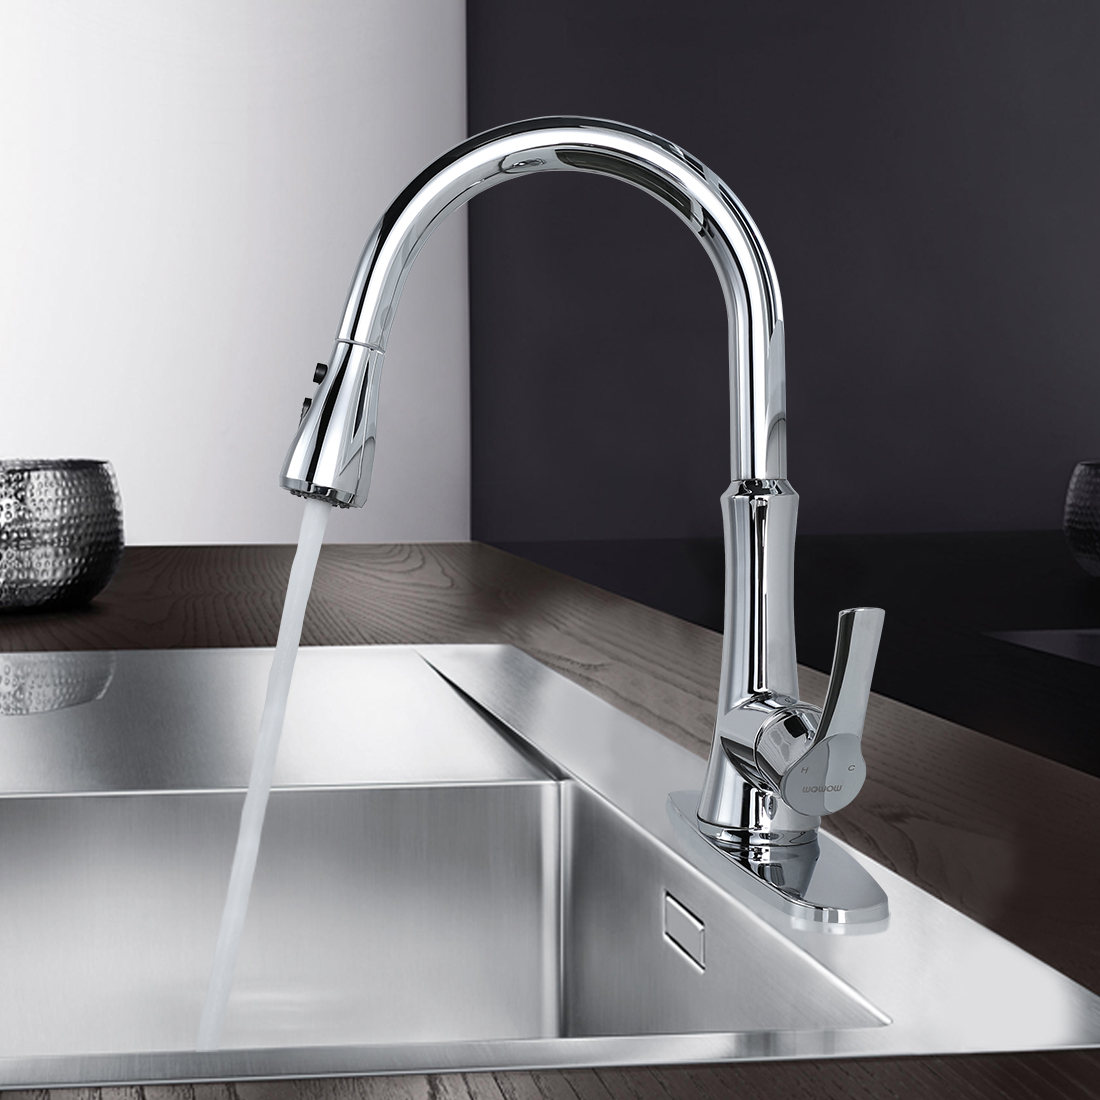 Three thoughts on the new national standard of faucet